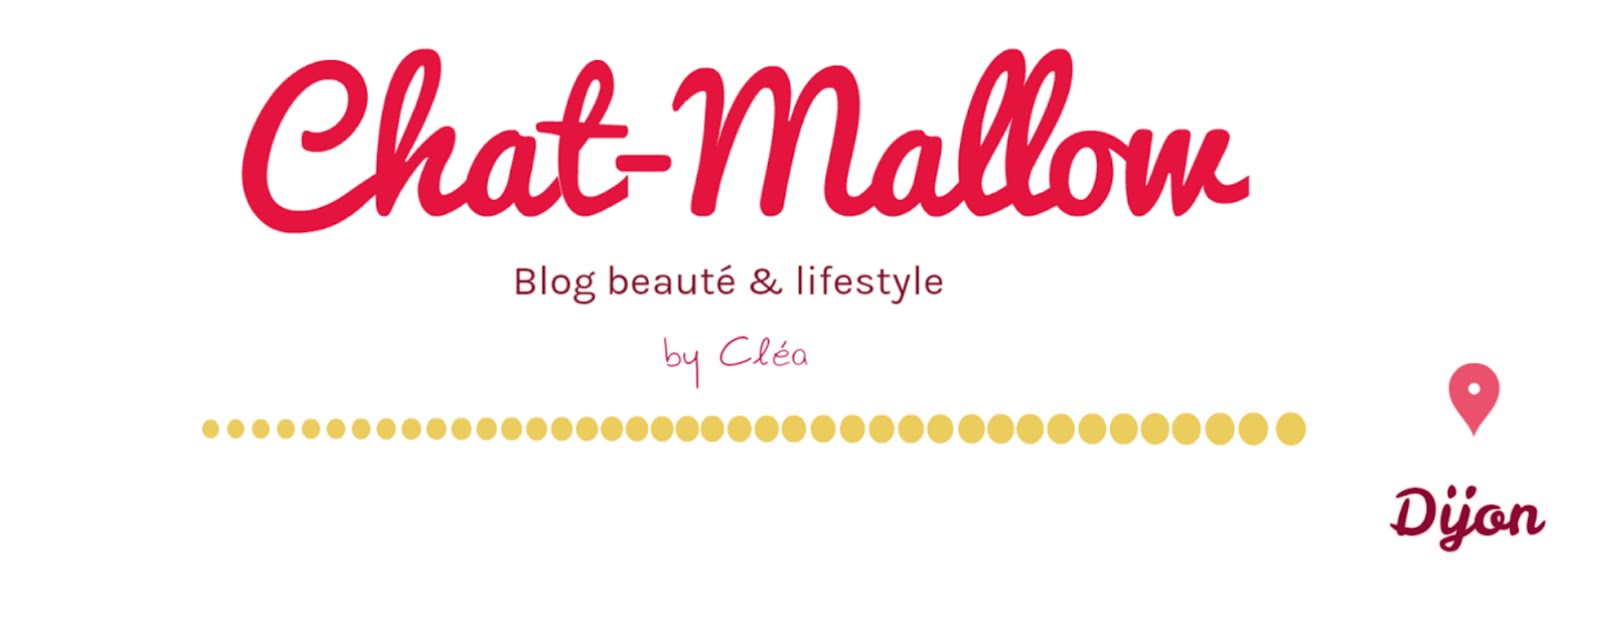 Chat-Mallow - Blog Lifestyle -  Dijon/Lyon